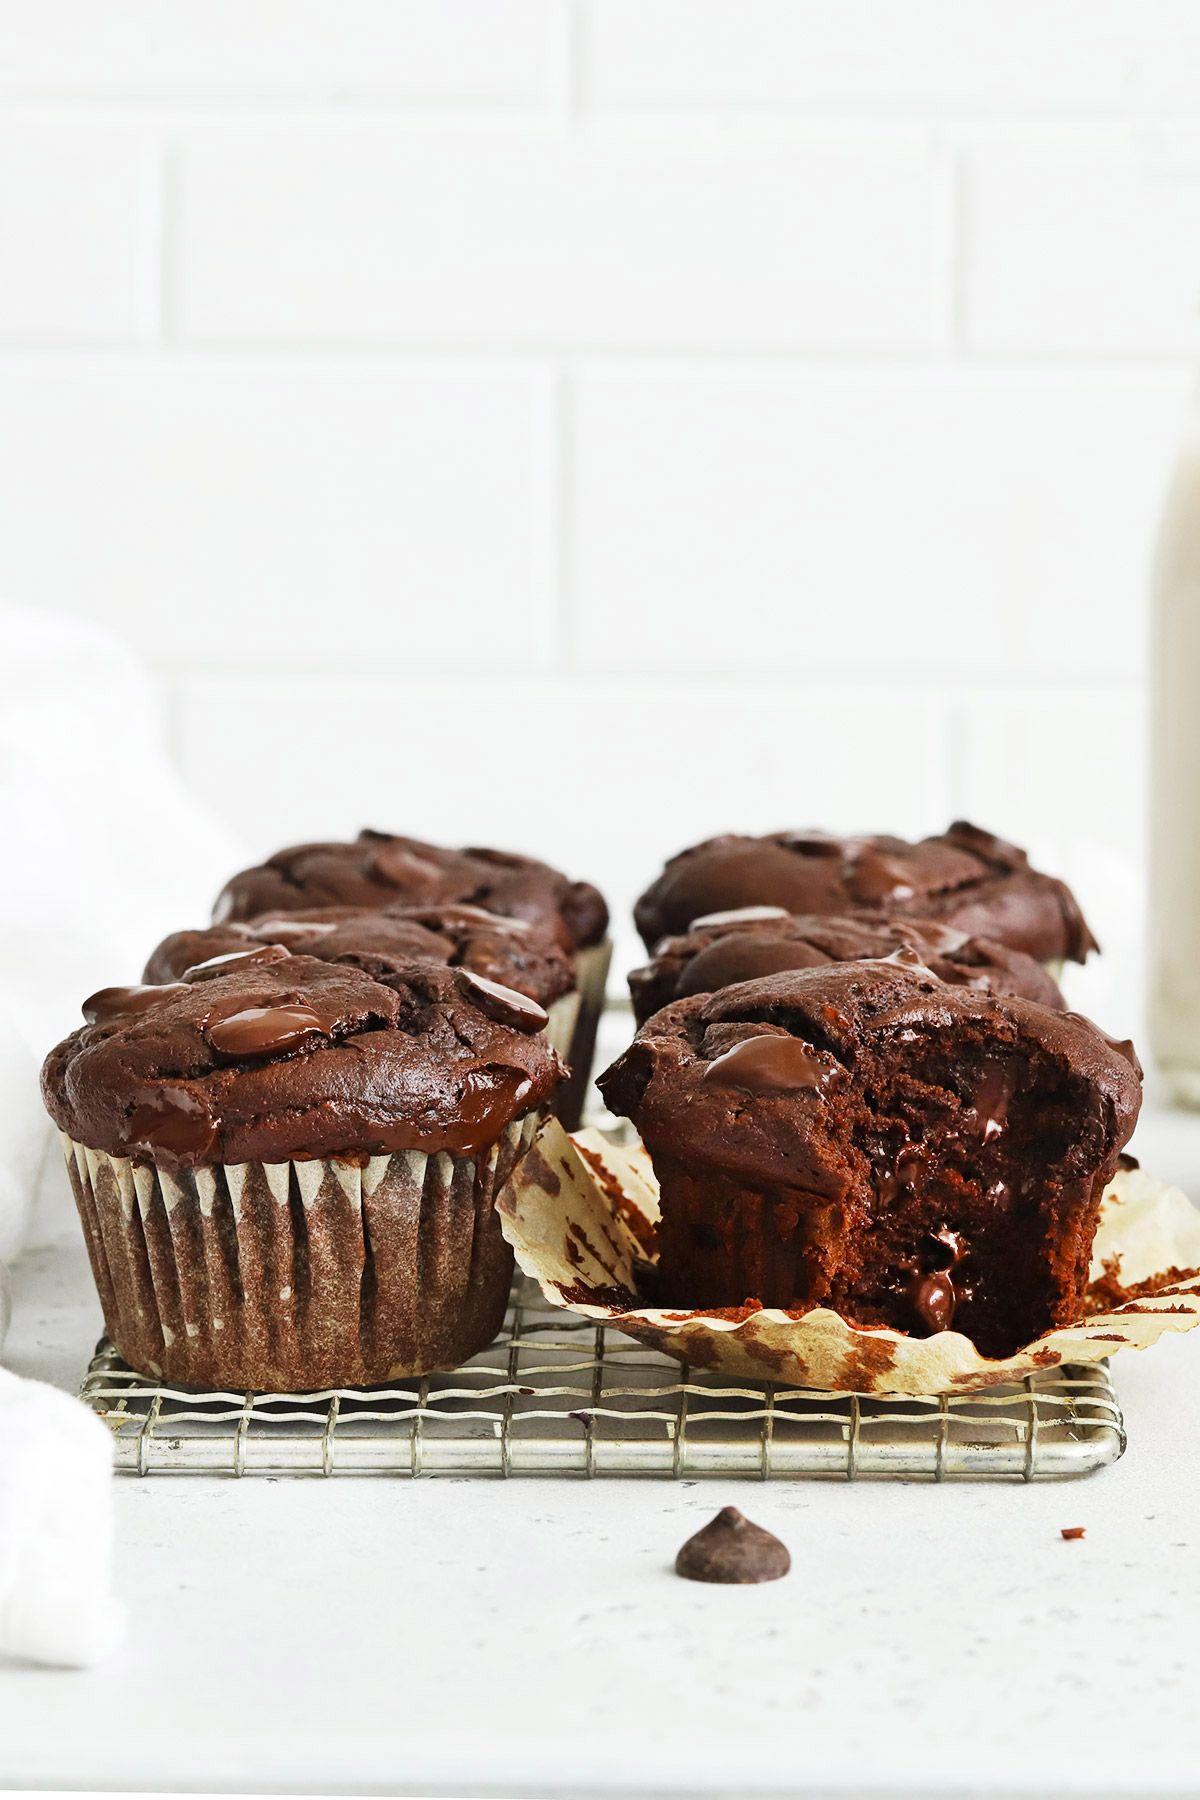 Front view of six gluten-free chocolate banana muffins on a cooling rack. One muffin is unwrapped with a bite taken out of it.